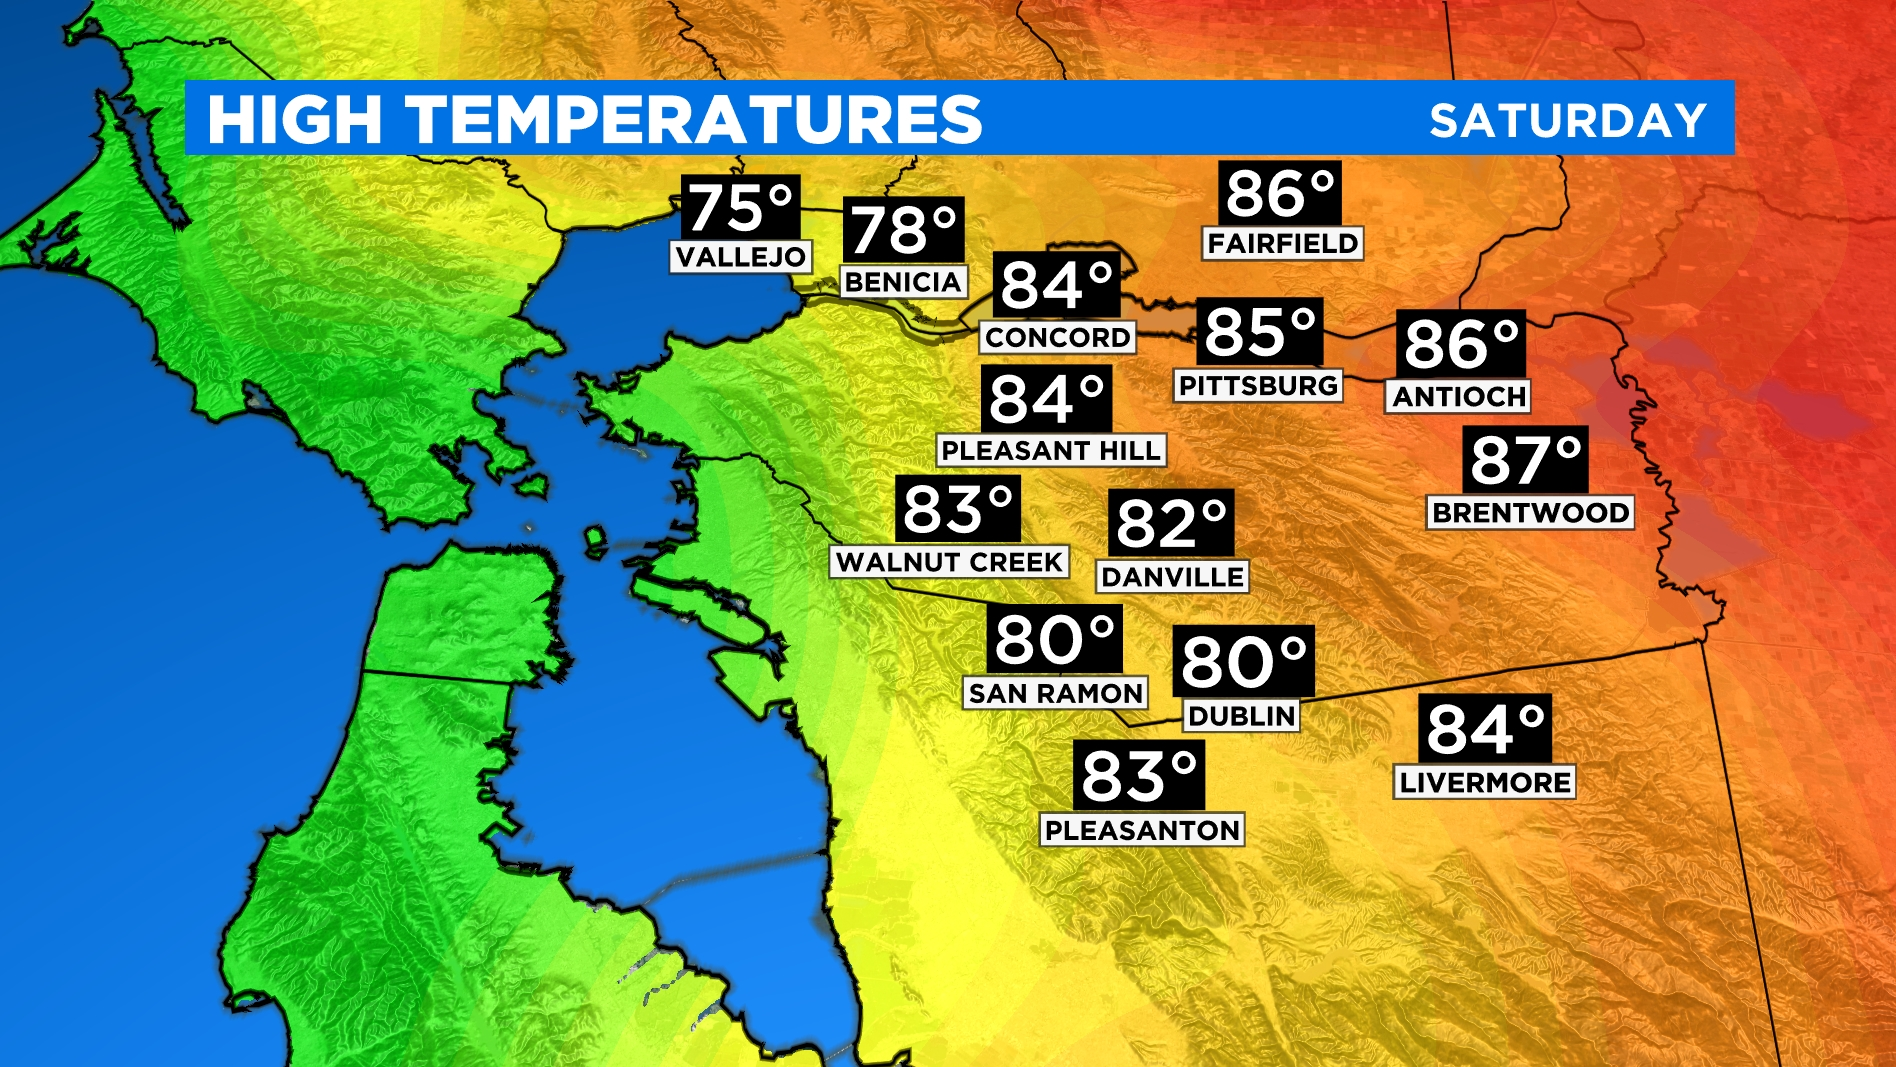 EAST BAY HIGHS large East Bay Temp Forcast